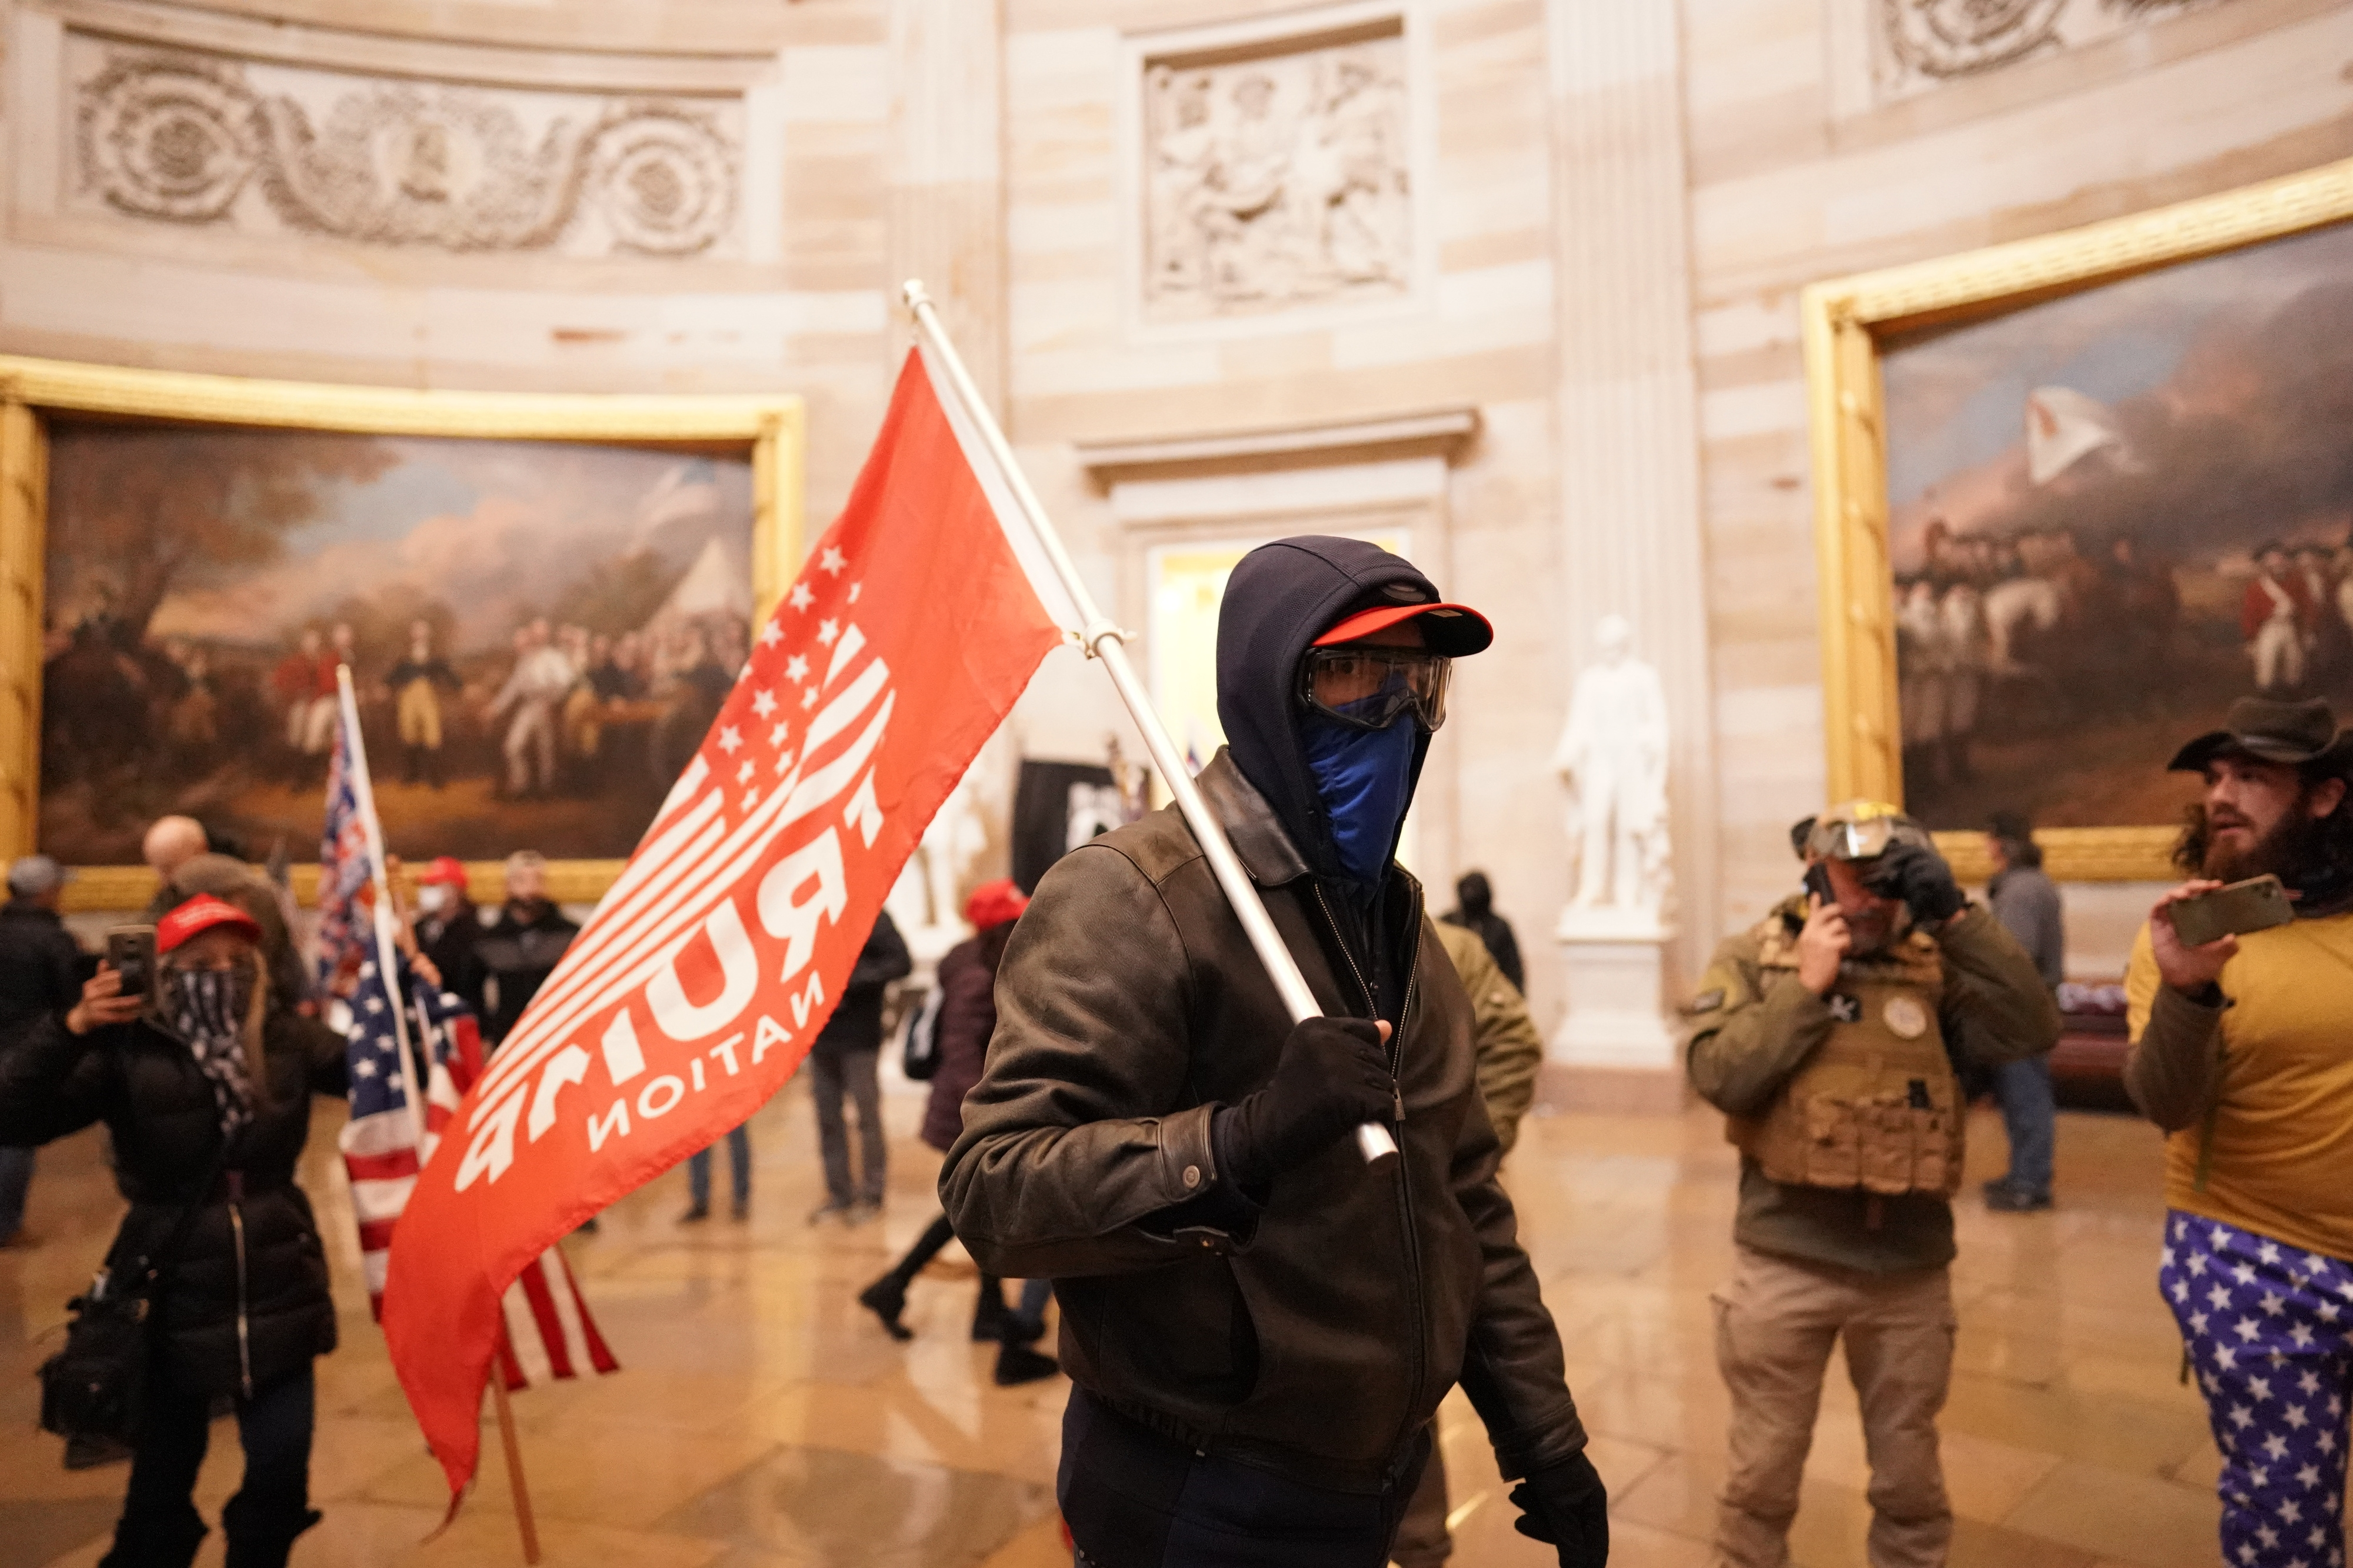 Protesters in a chamber of the Capitol in Washington, DC, one holding a Trump flag.